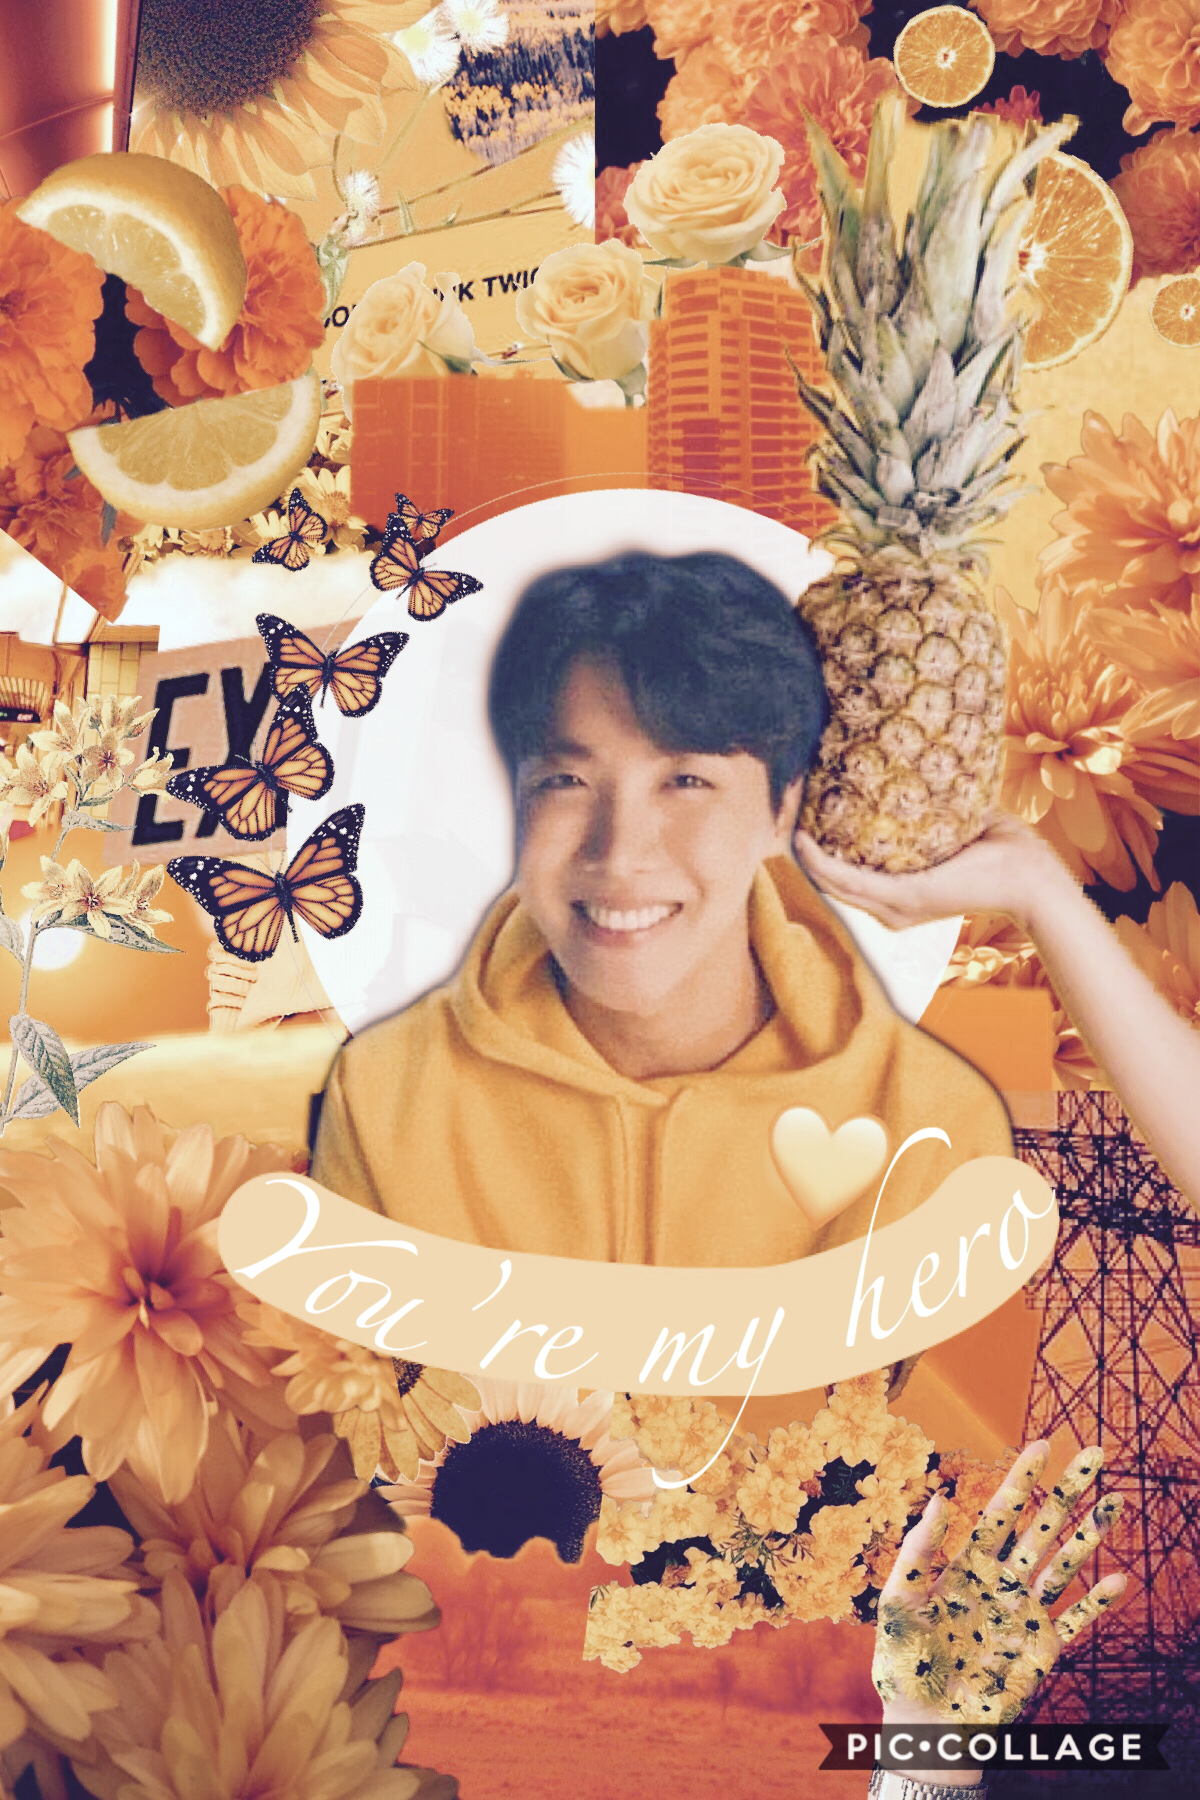 💛 HAPPY JHOPE DAY💛  Happy Birthday our Sunshine I hope you never stop smiling and bringing joy to this world 🥰  —> I'm your hero! <— —> you're my hero! <—